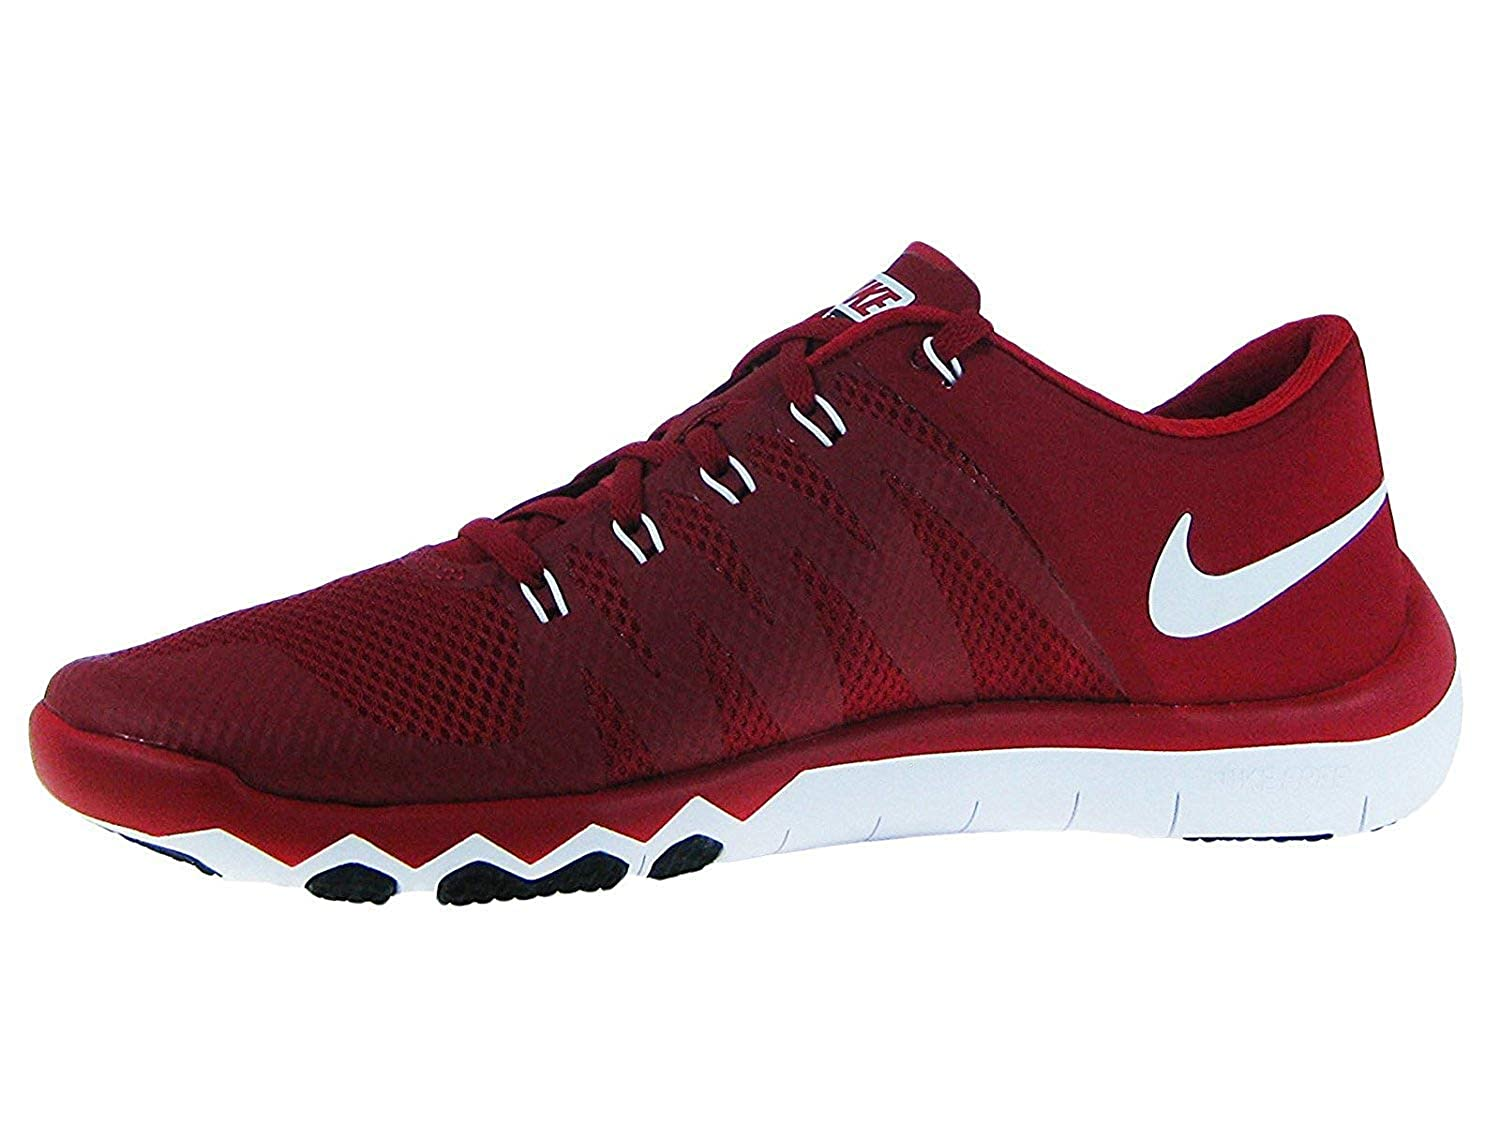 cheap for discount 8defd 00c39 ... best price amazon nike free trainer 5.0 v6 tb 723987 600 mens size 6.5  crimson black